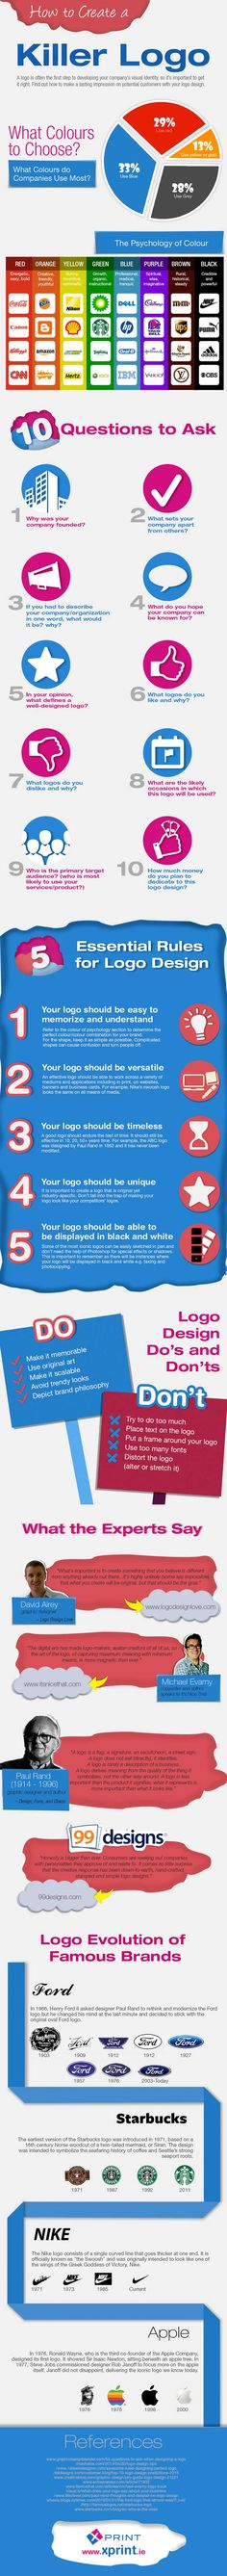 Create a Killer Logo http://www.intelisystems.com/resources/seminar/